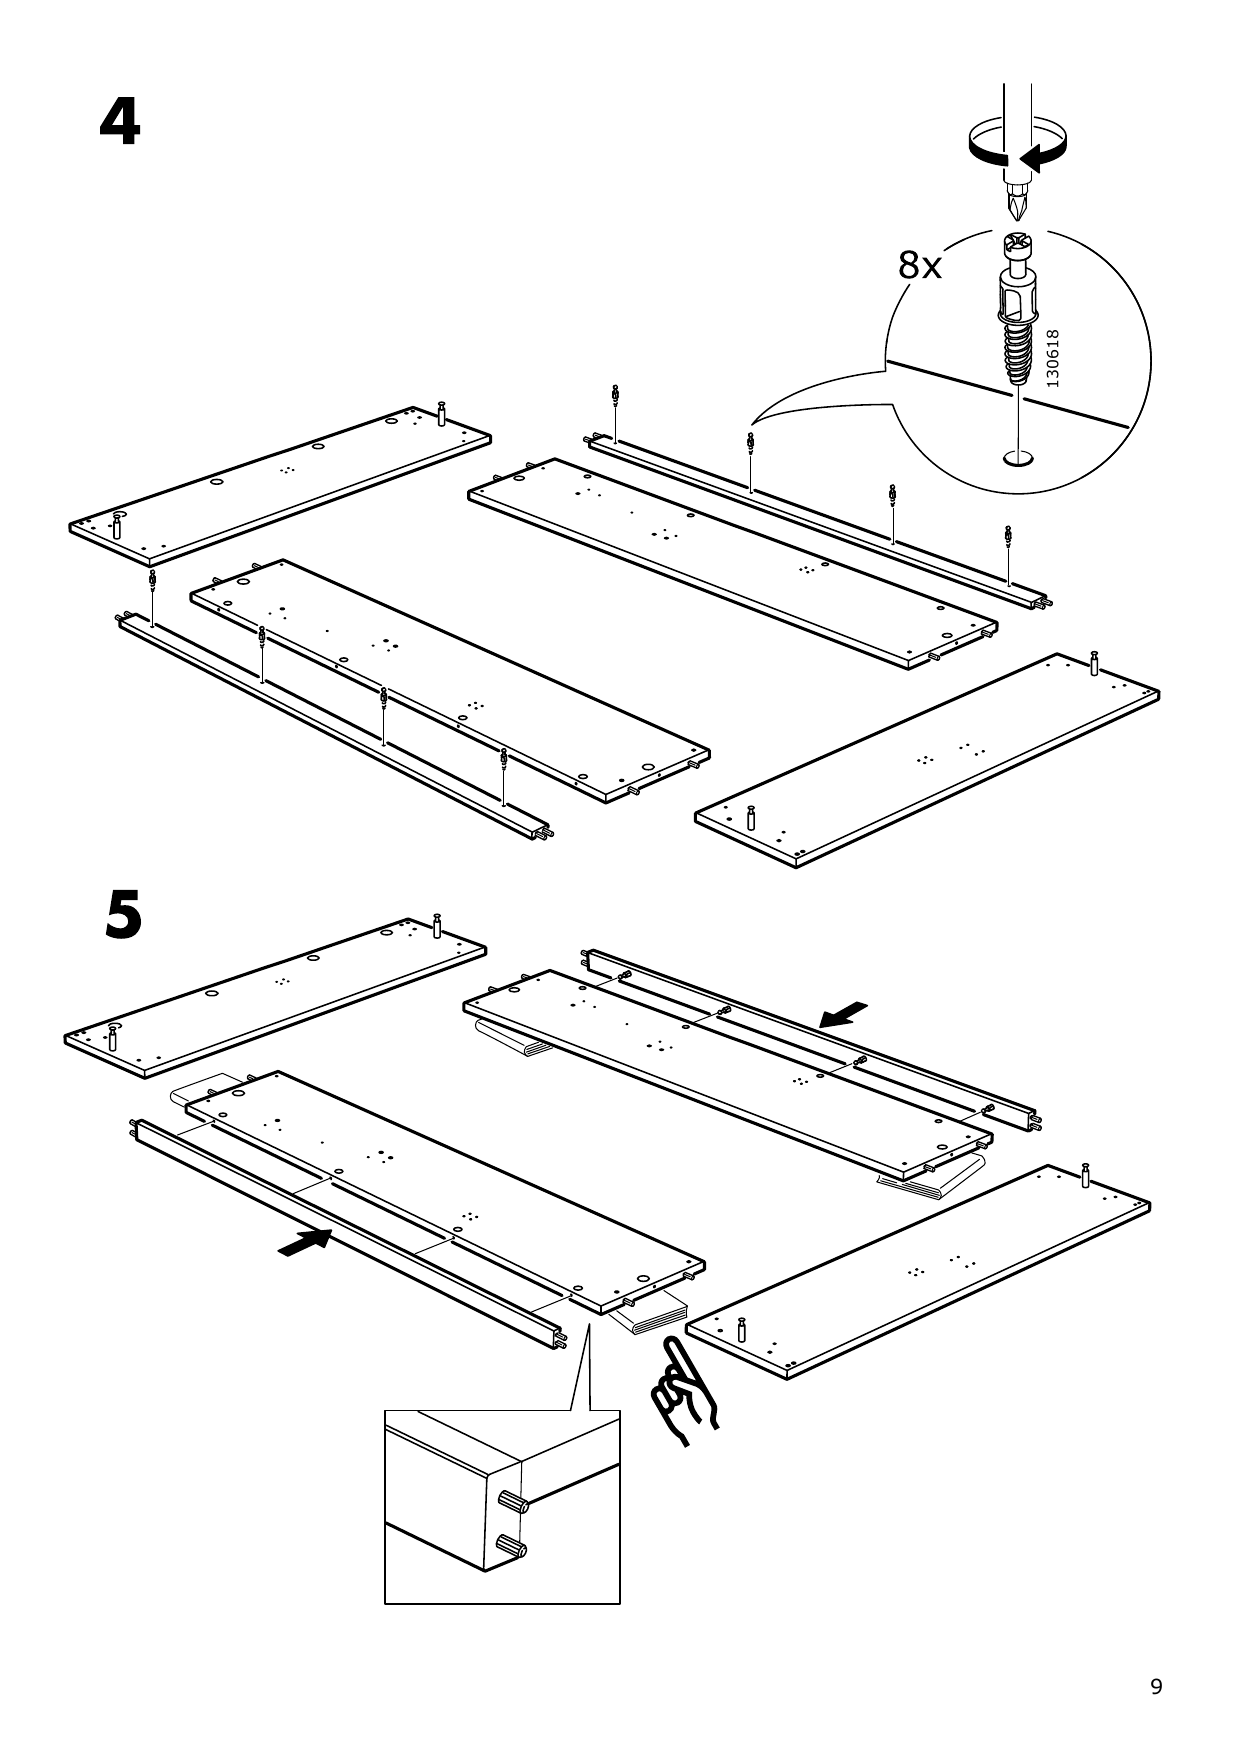 IKEA MALM Storage bed Assembly Instruction - 9